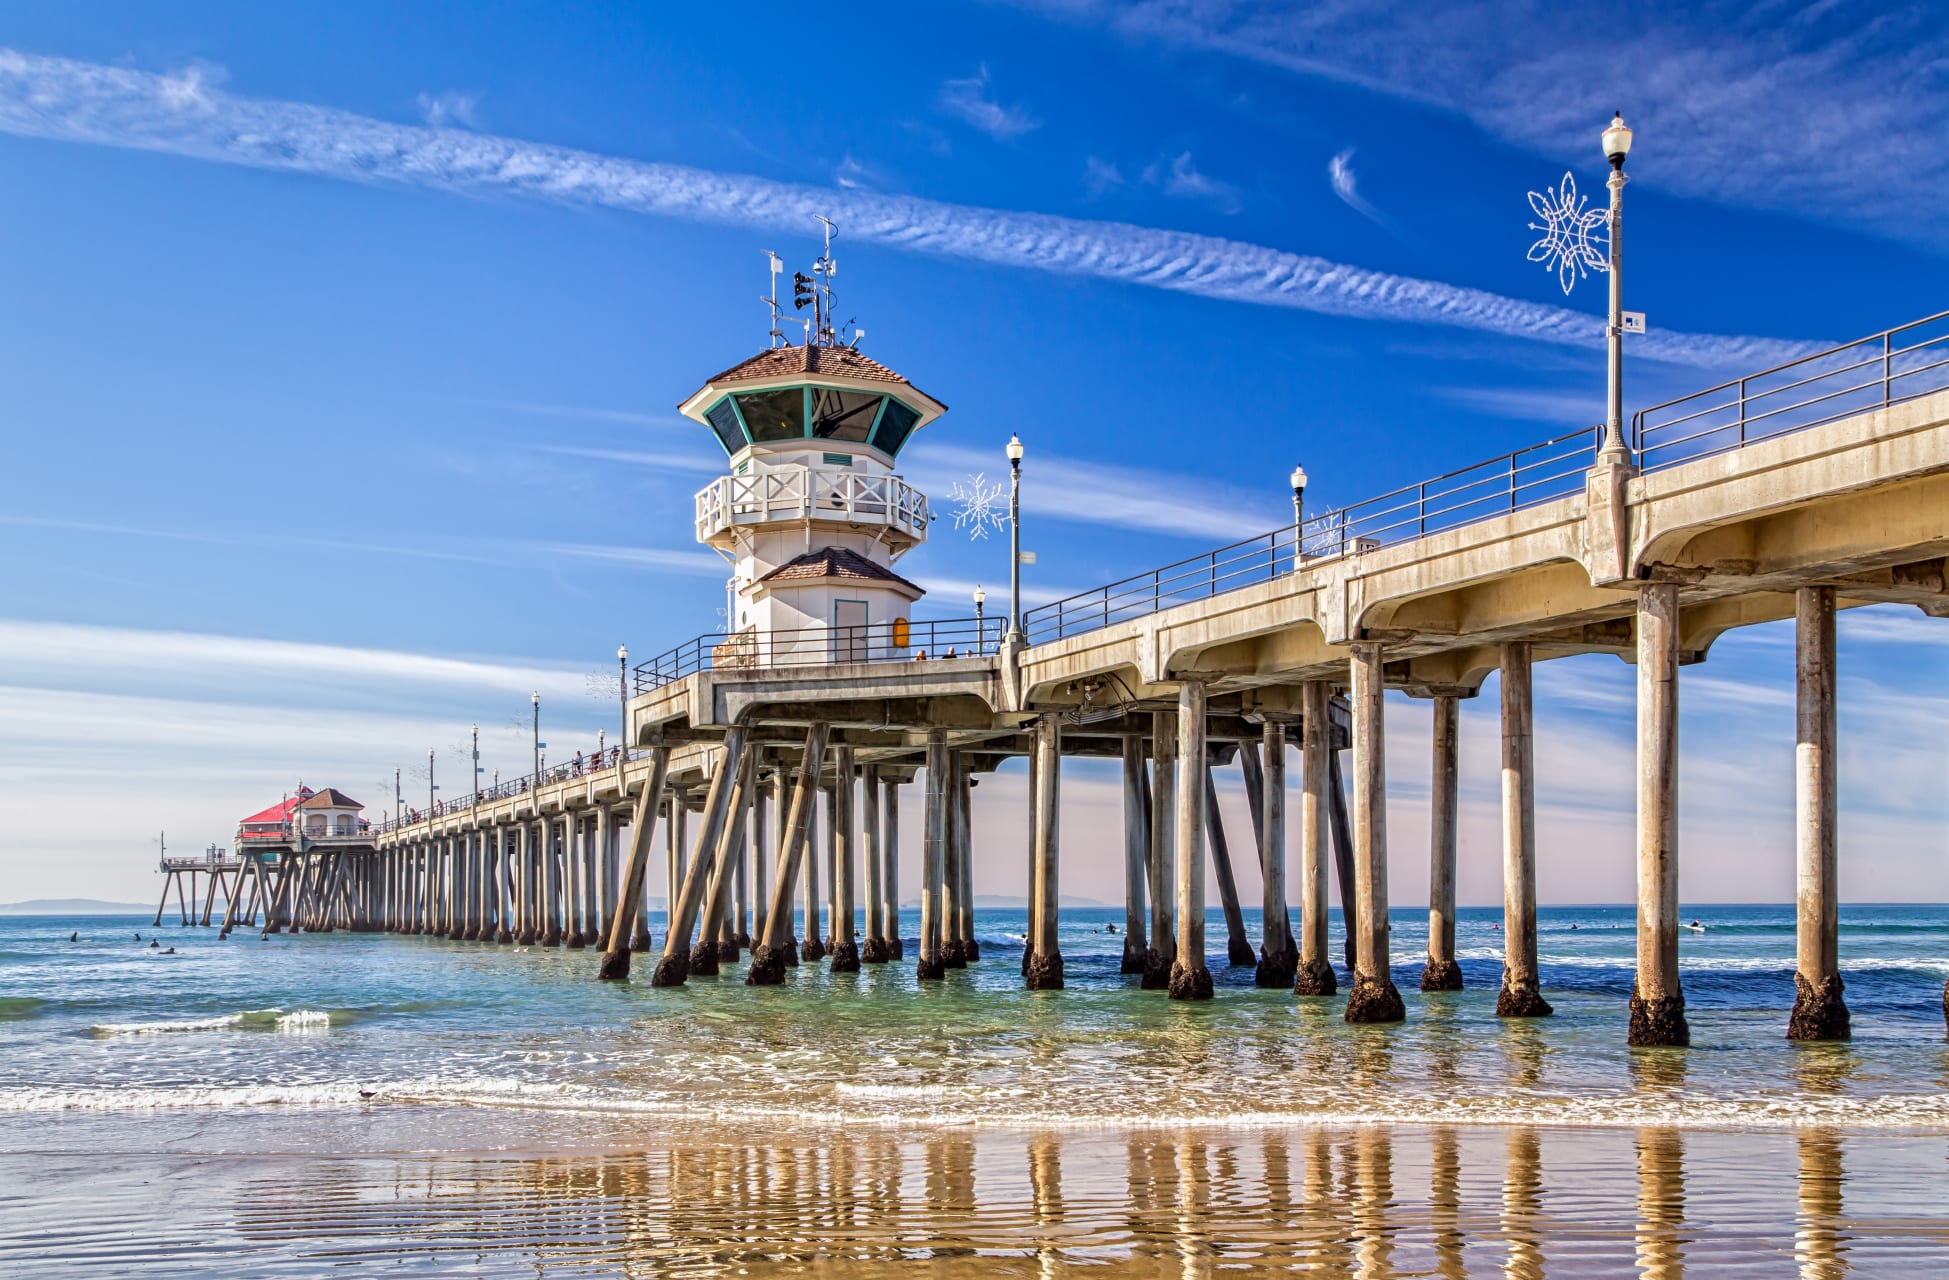 Huntington Beach - Explore Huntington Beach, Surf City USA and Learn About the History of Surfing!